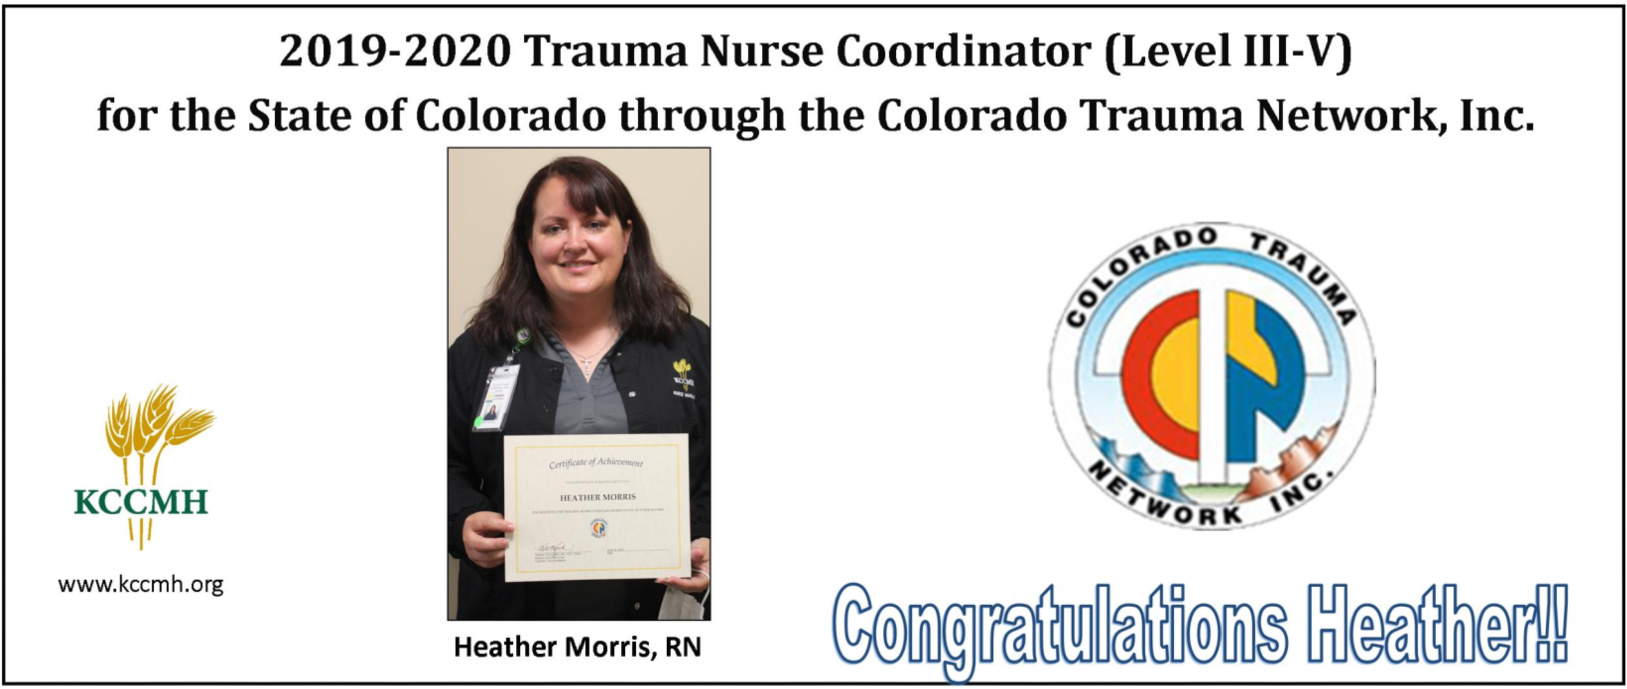 Heather Morris won a Trauma Nurse Coordinator award.